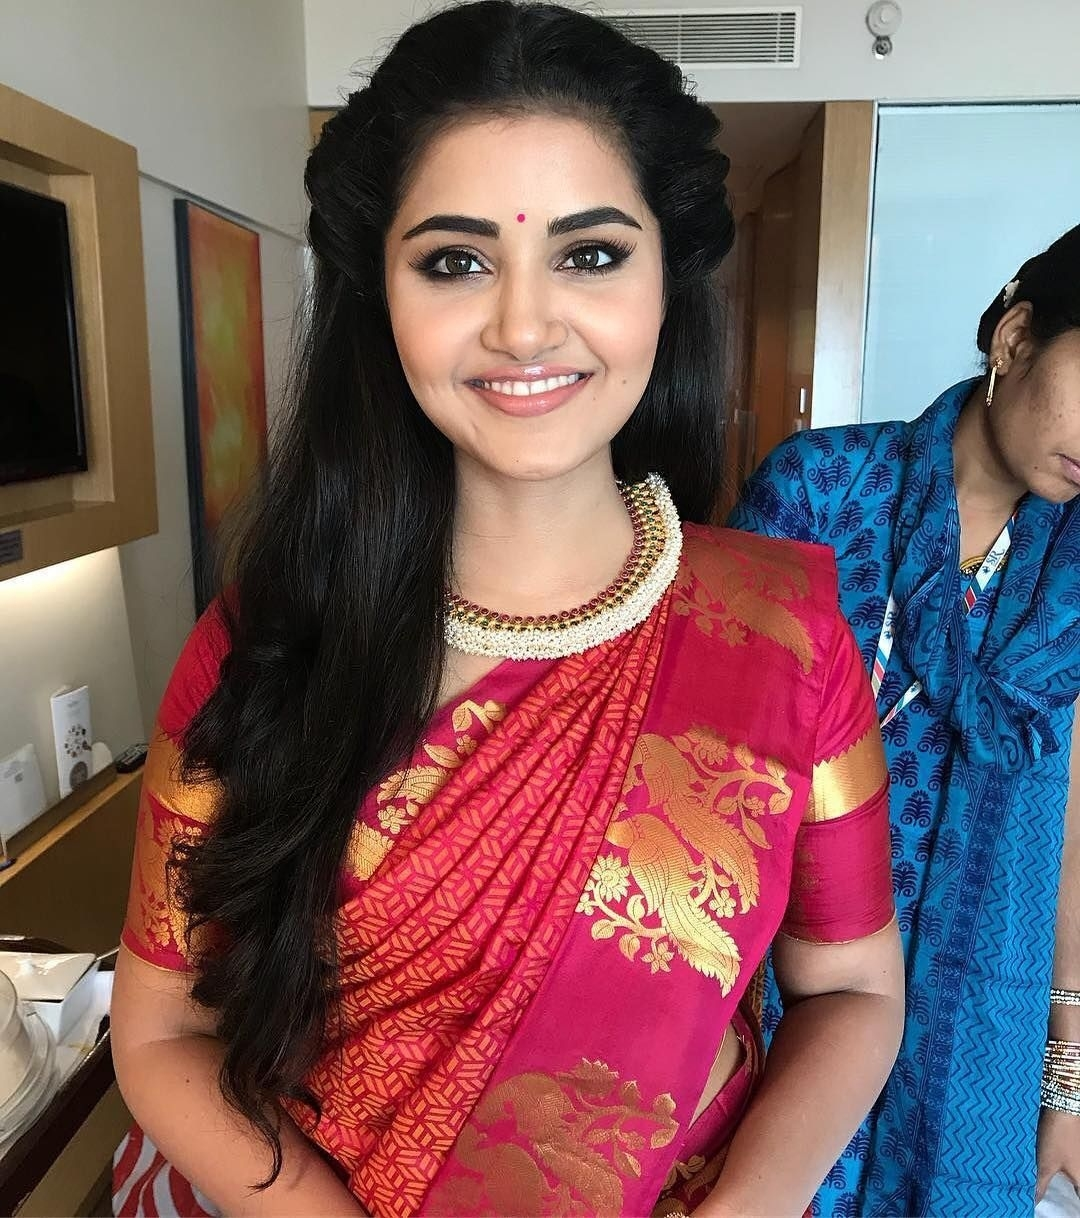 Wedding Hairstyle Round Face: Hairstyle For Round Face In Saree